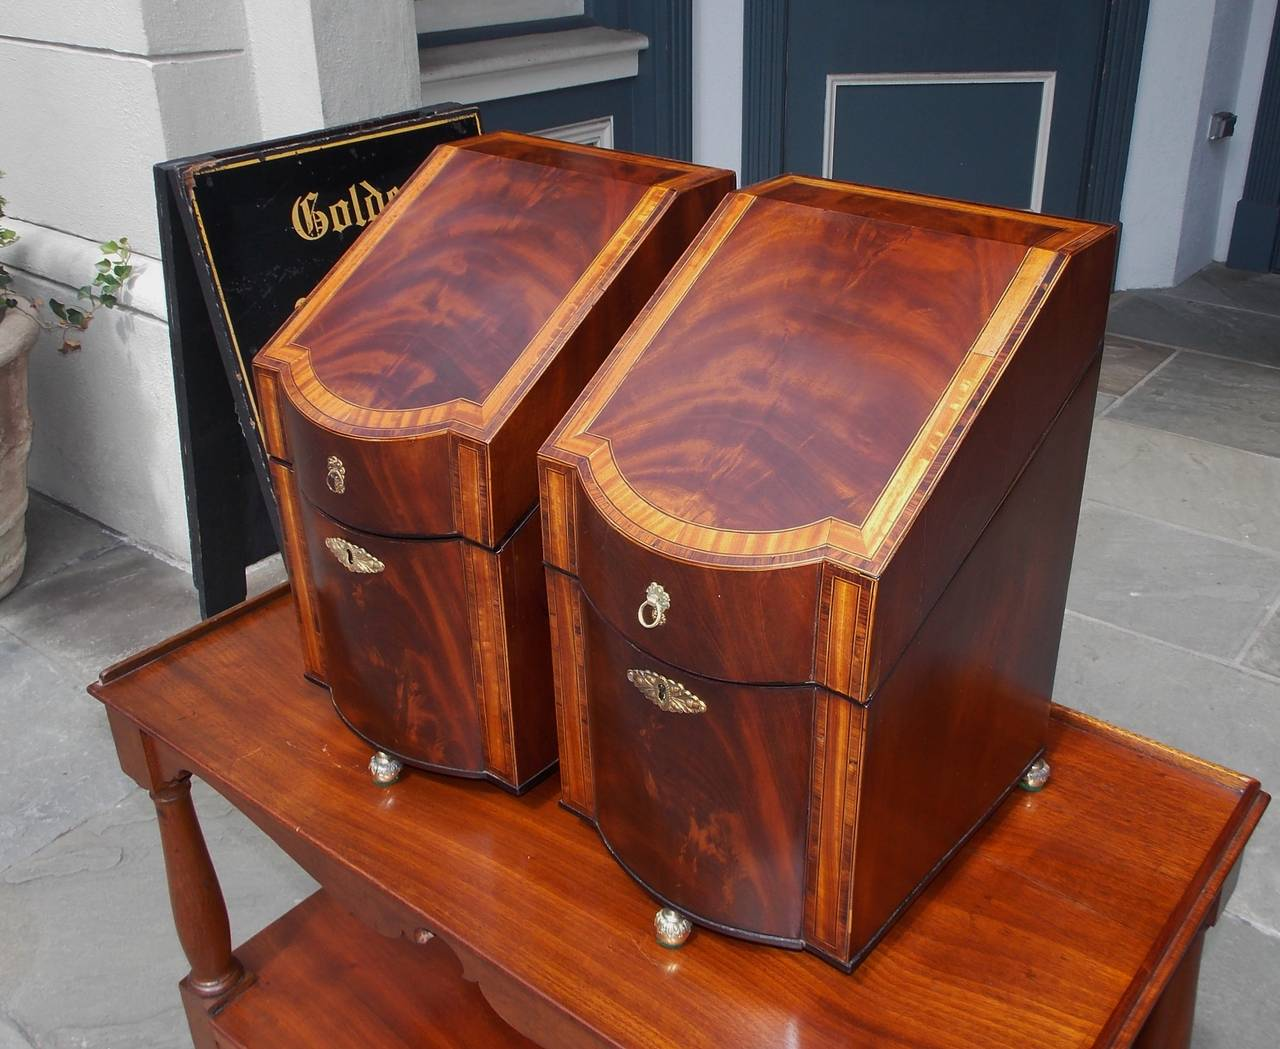 Pair of American Mahogany Inlaid Cutlery Boxes Charleston, SC, Circa 1790 In Excellent Condition For Sale In Charleston, SC